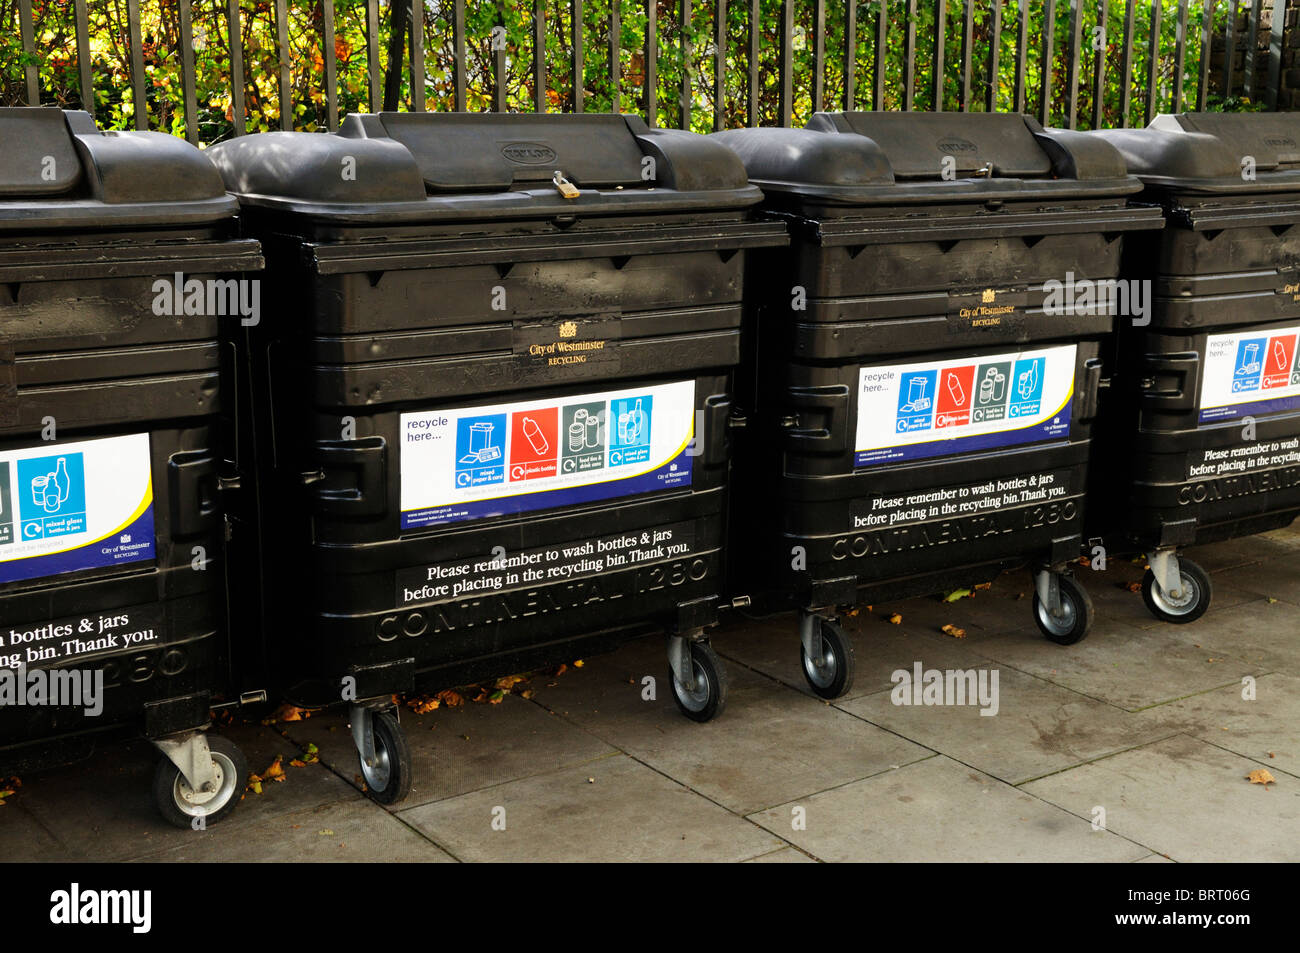 Westminster City Council Recycling bins, London, England, UK Stock Photo